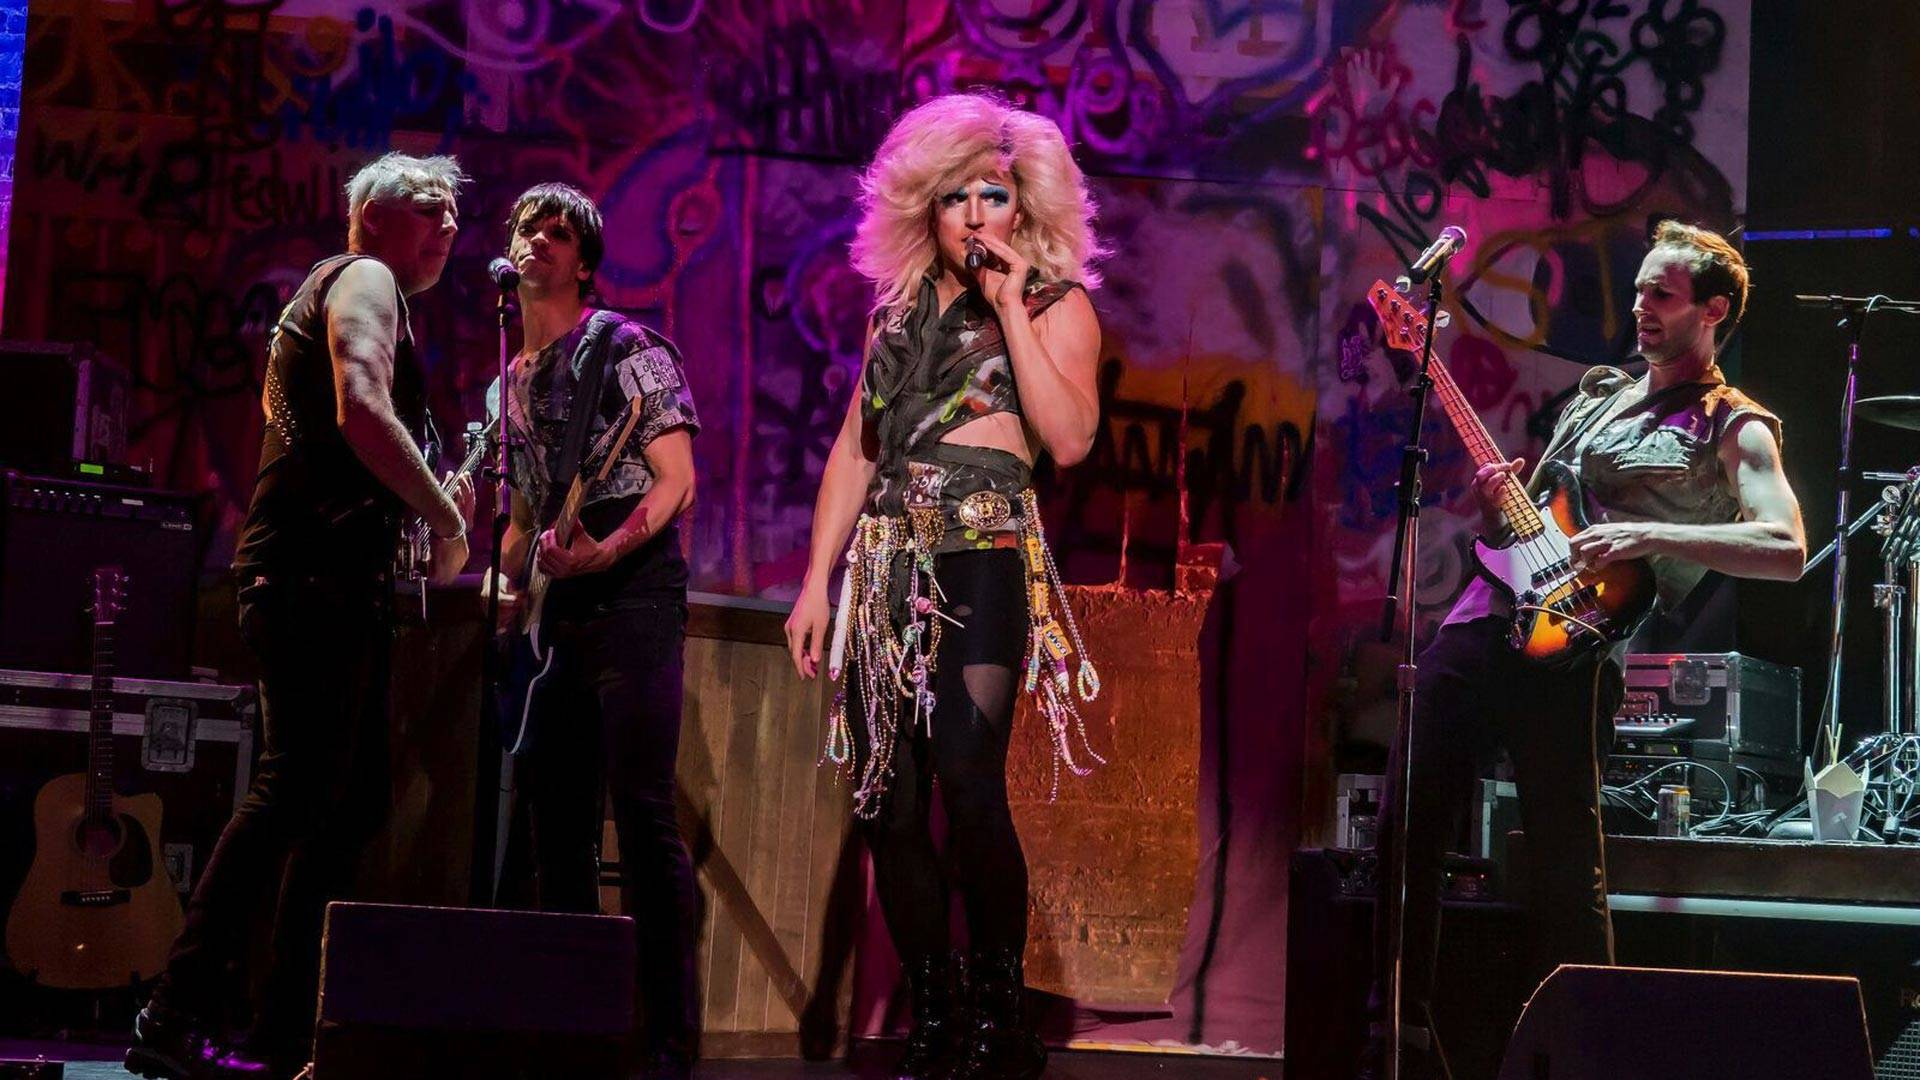 Steven Bolinger, Diogo Zavadski, Coleton Schmitto, Lysol Tony-Romeo rock out as Hedwig and the Angry Inch. Alexander Belmont